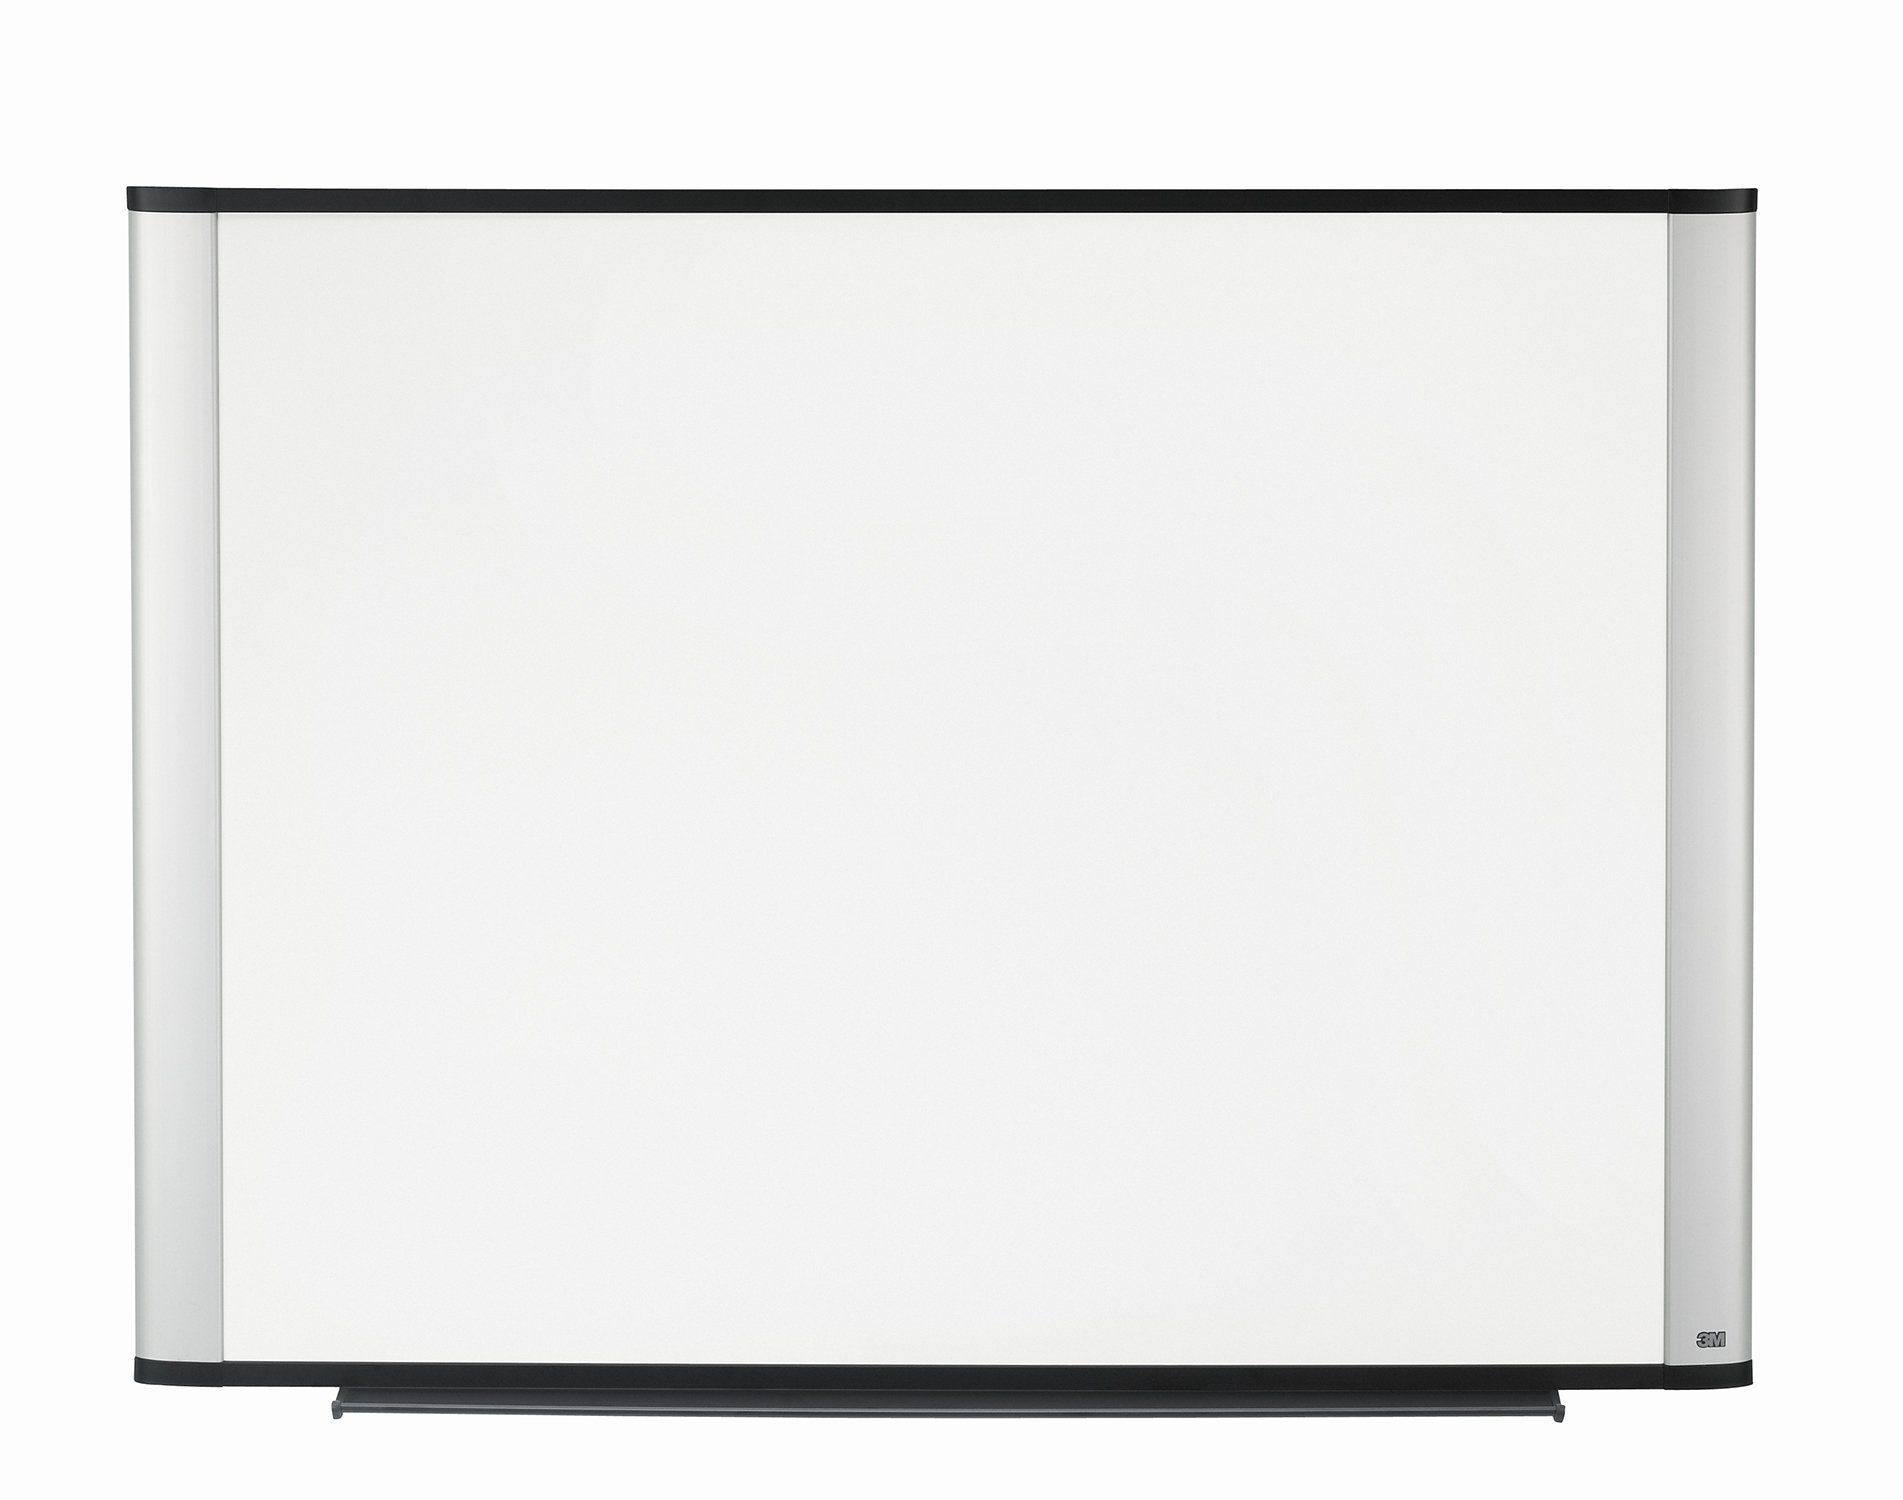 3M Porcelain Dry Erase Board, 72 x 48-Inches, Widescreen Aluminum ...